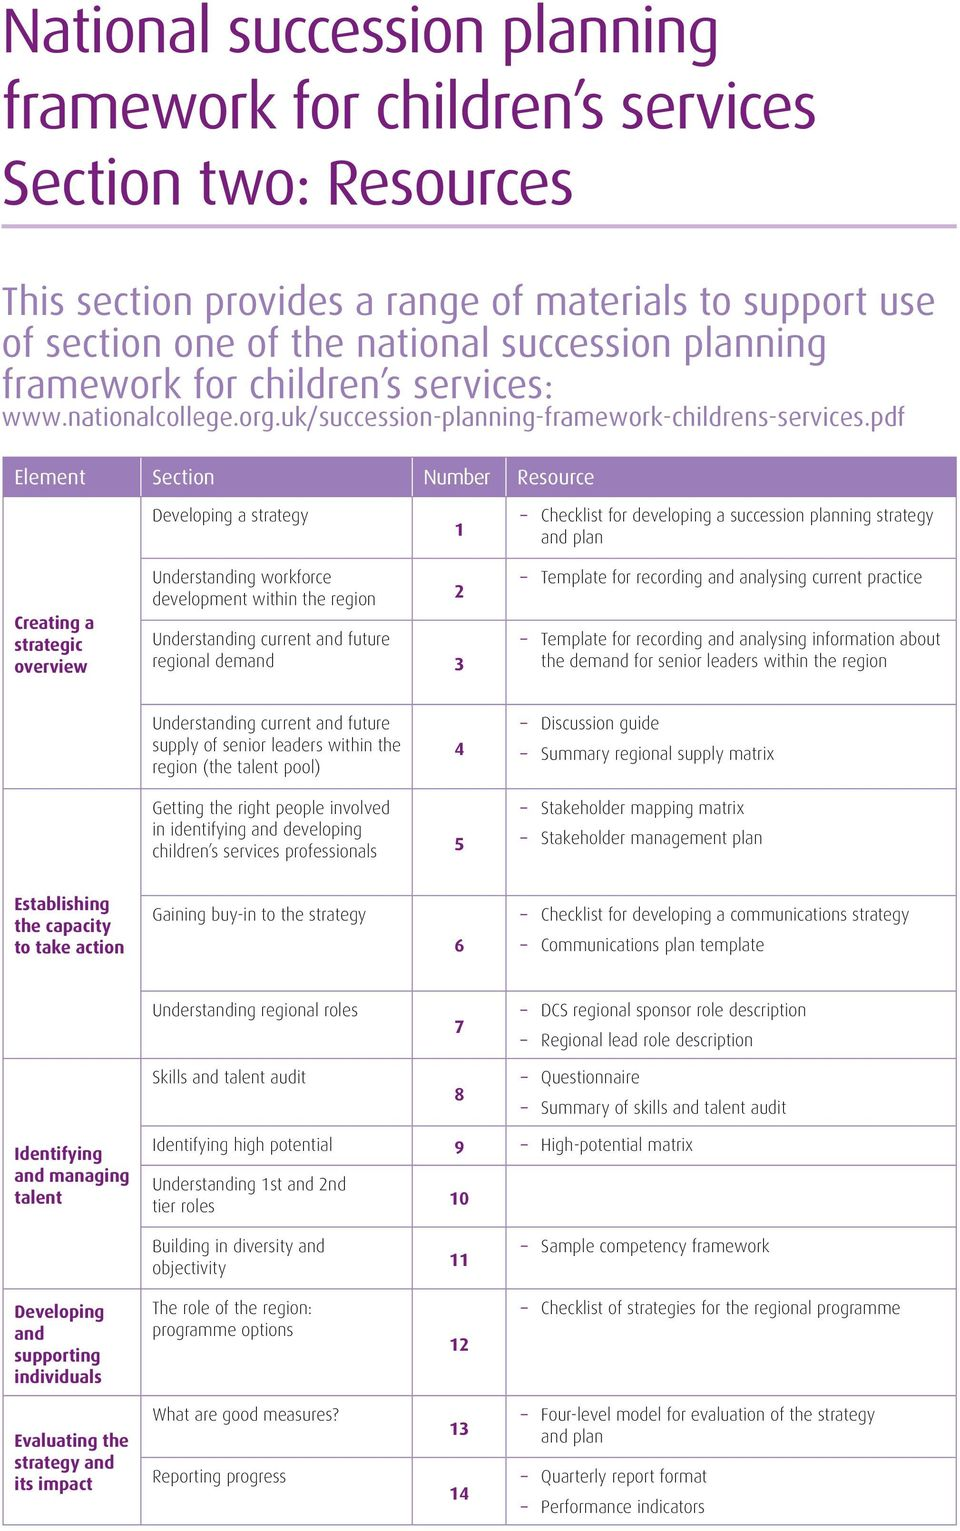 pdf Element Section Number Resource Developing a strategy 1 Checklist for developing a succession planning strategy and plan Creating a strategic overview Understanding workforce development within